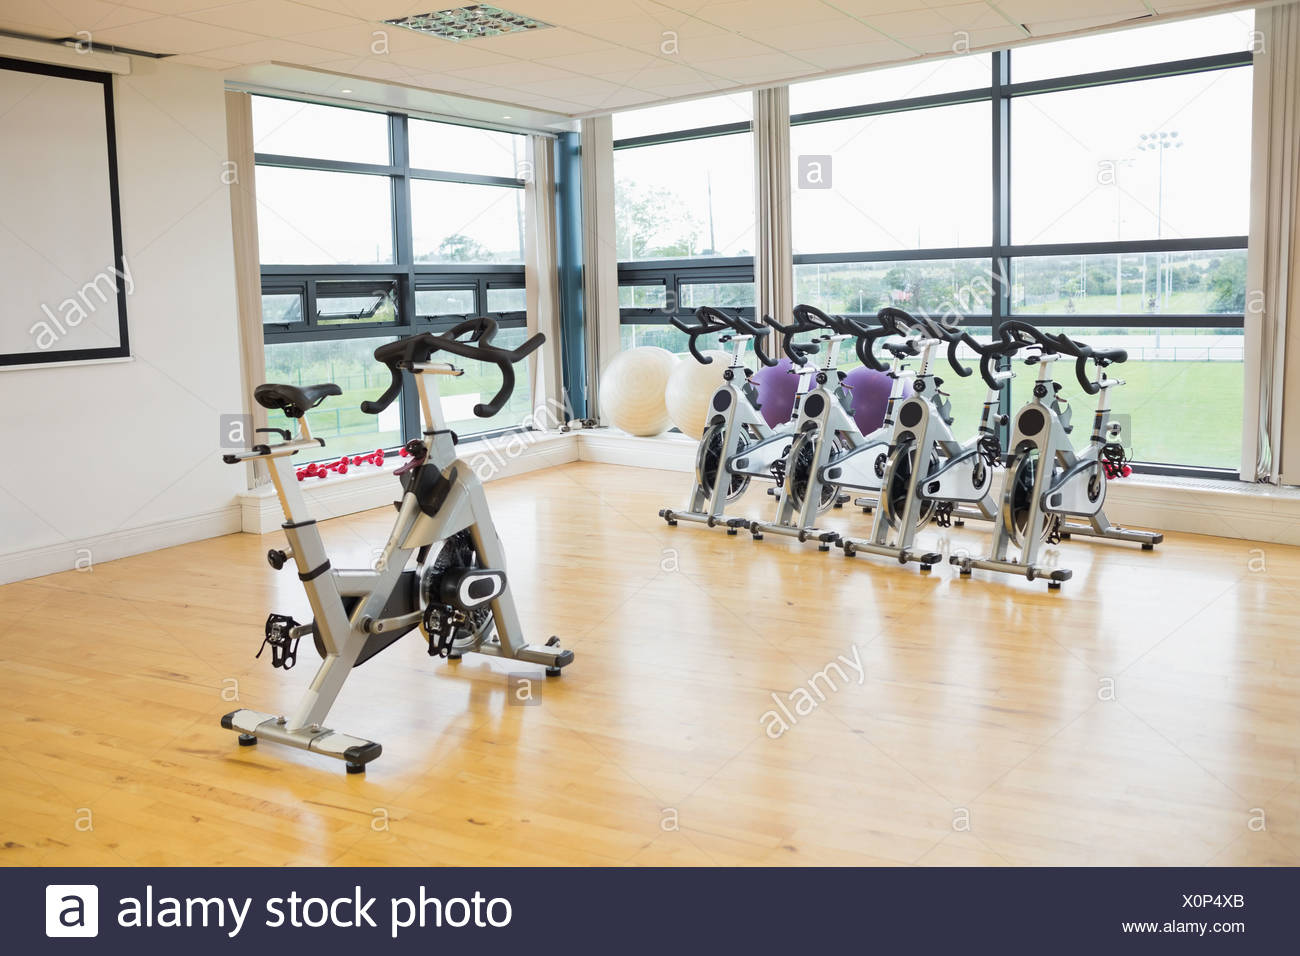 Spinning exercise bikes in gym room stock photo: 275852707 alamy